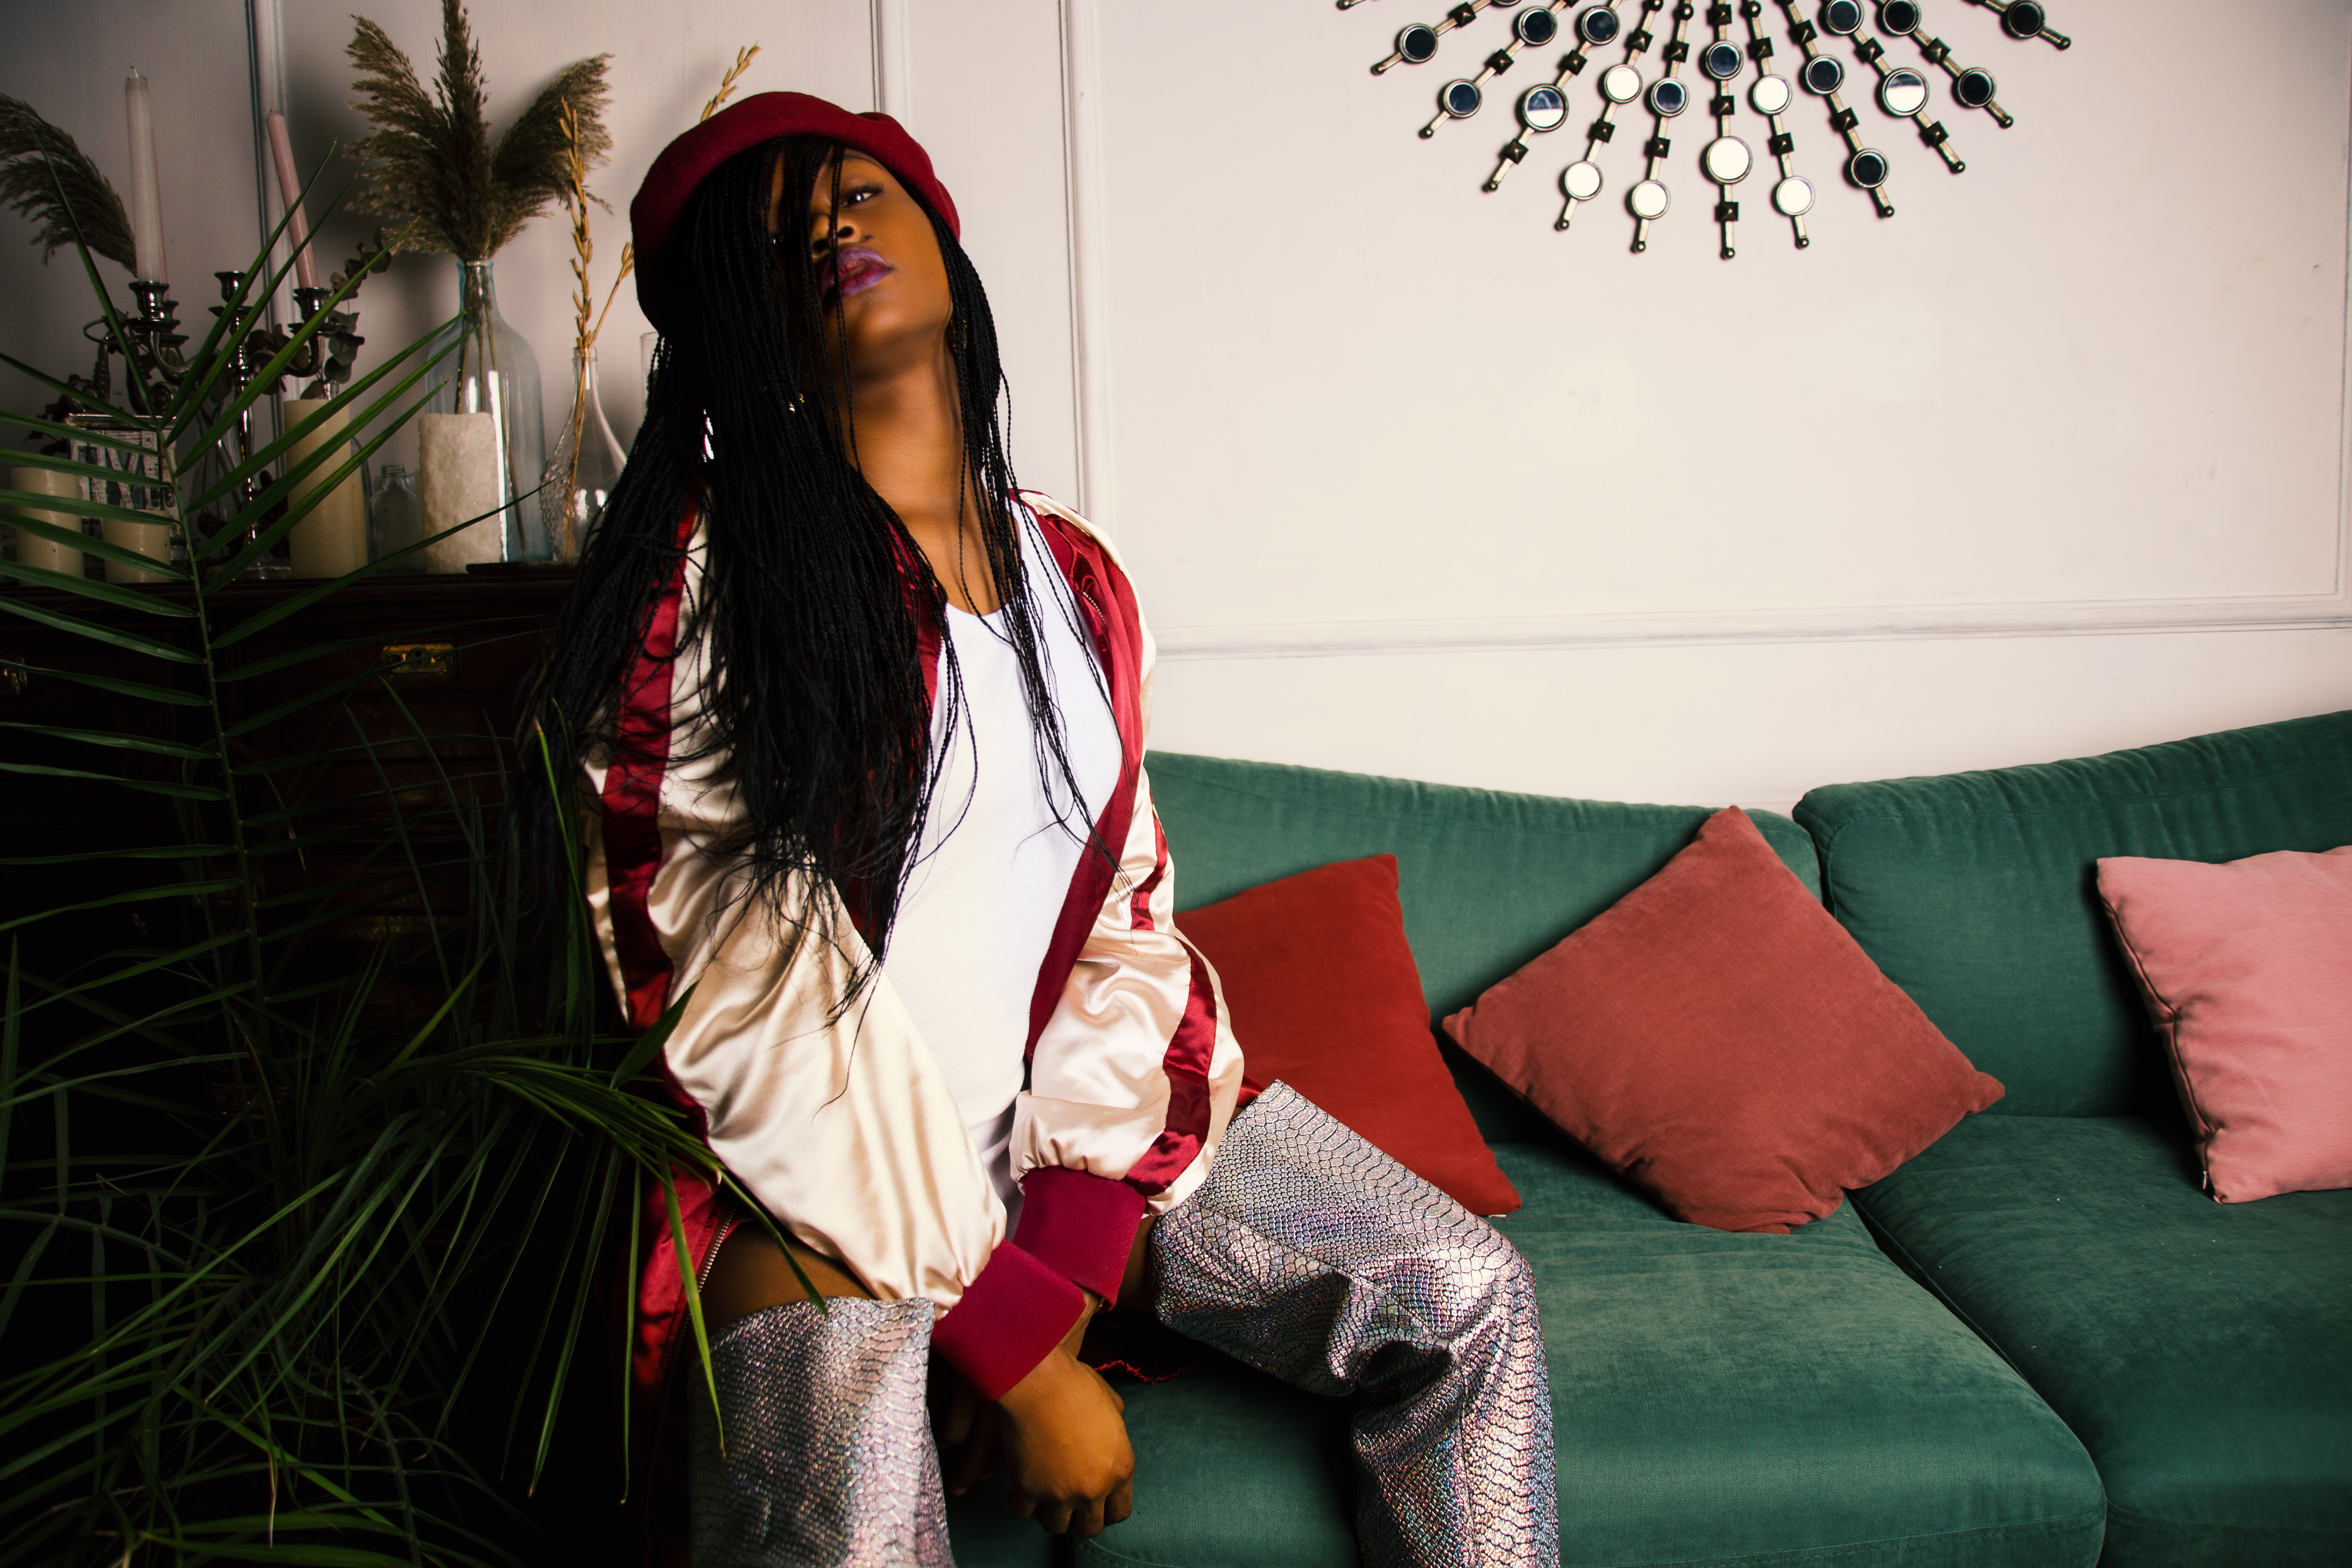 Woman in white and red jacket sitting on green couch photo